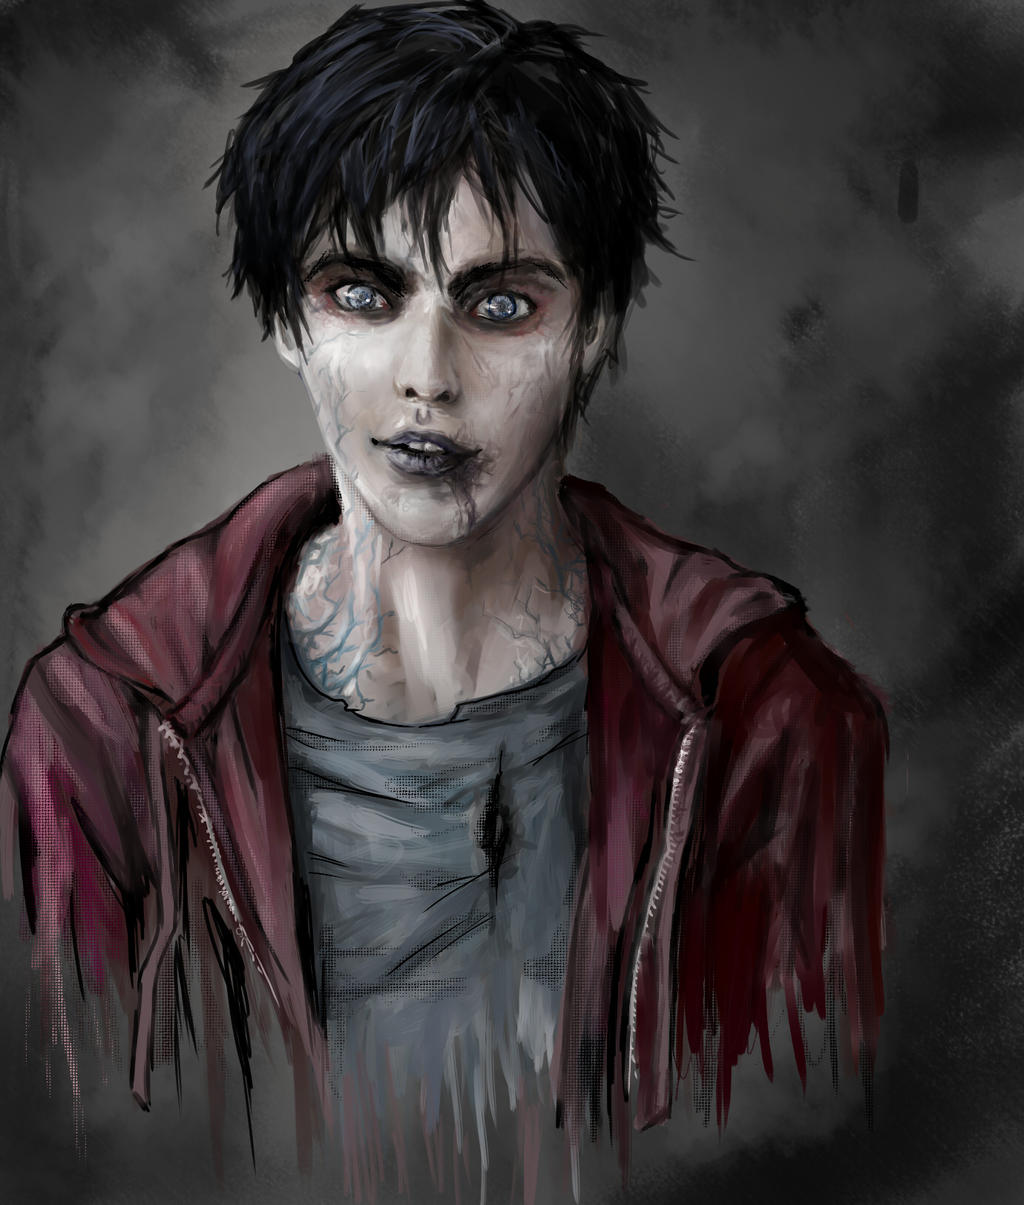 The Most Charming Zombie - Warm Bodies 'R' by JawsWolf